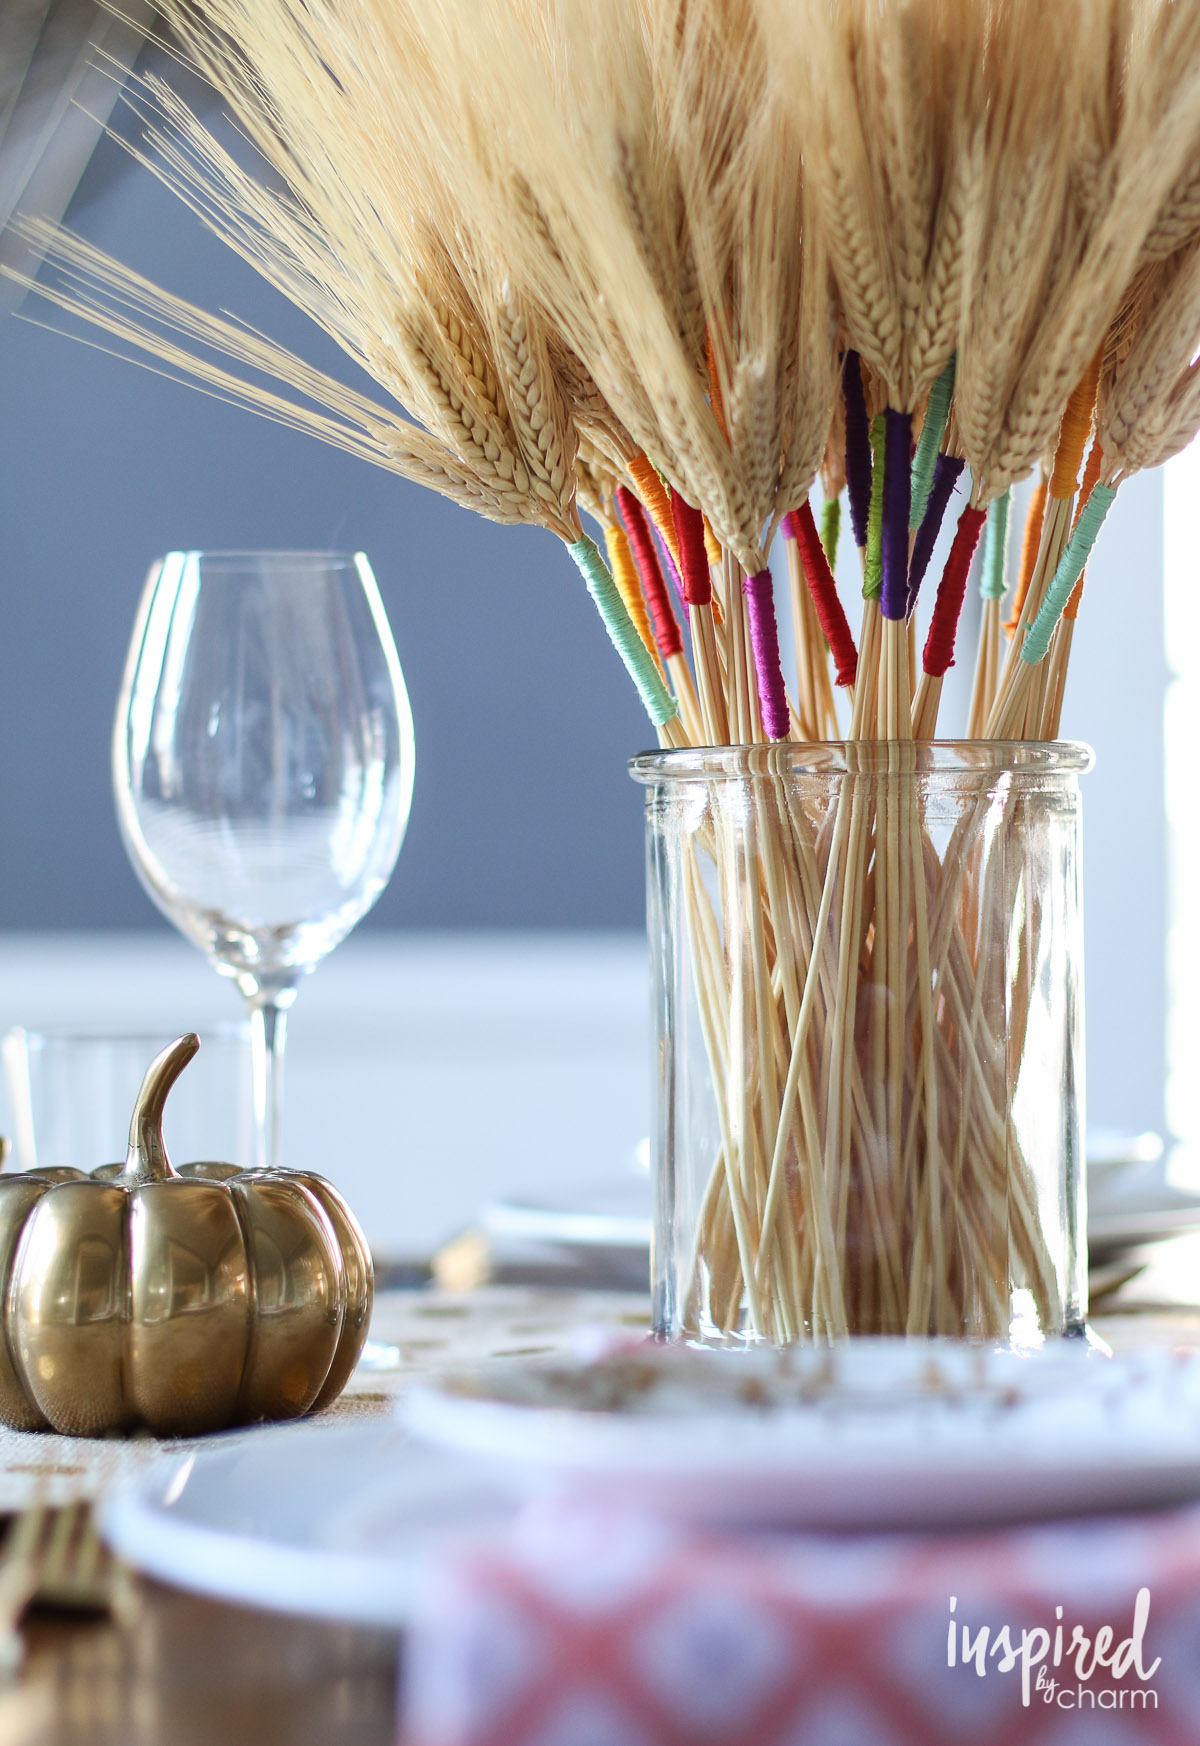 Towards the end of the year, it seems like we barely have a minute to rest. You've got to start early if you want to come out ahead! I've rounded up some of my favorite Thanksgiving DIY's to give your table the colorful makeover it deserves. Click to read more!